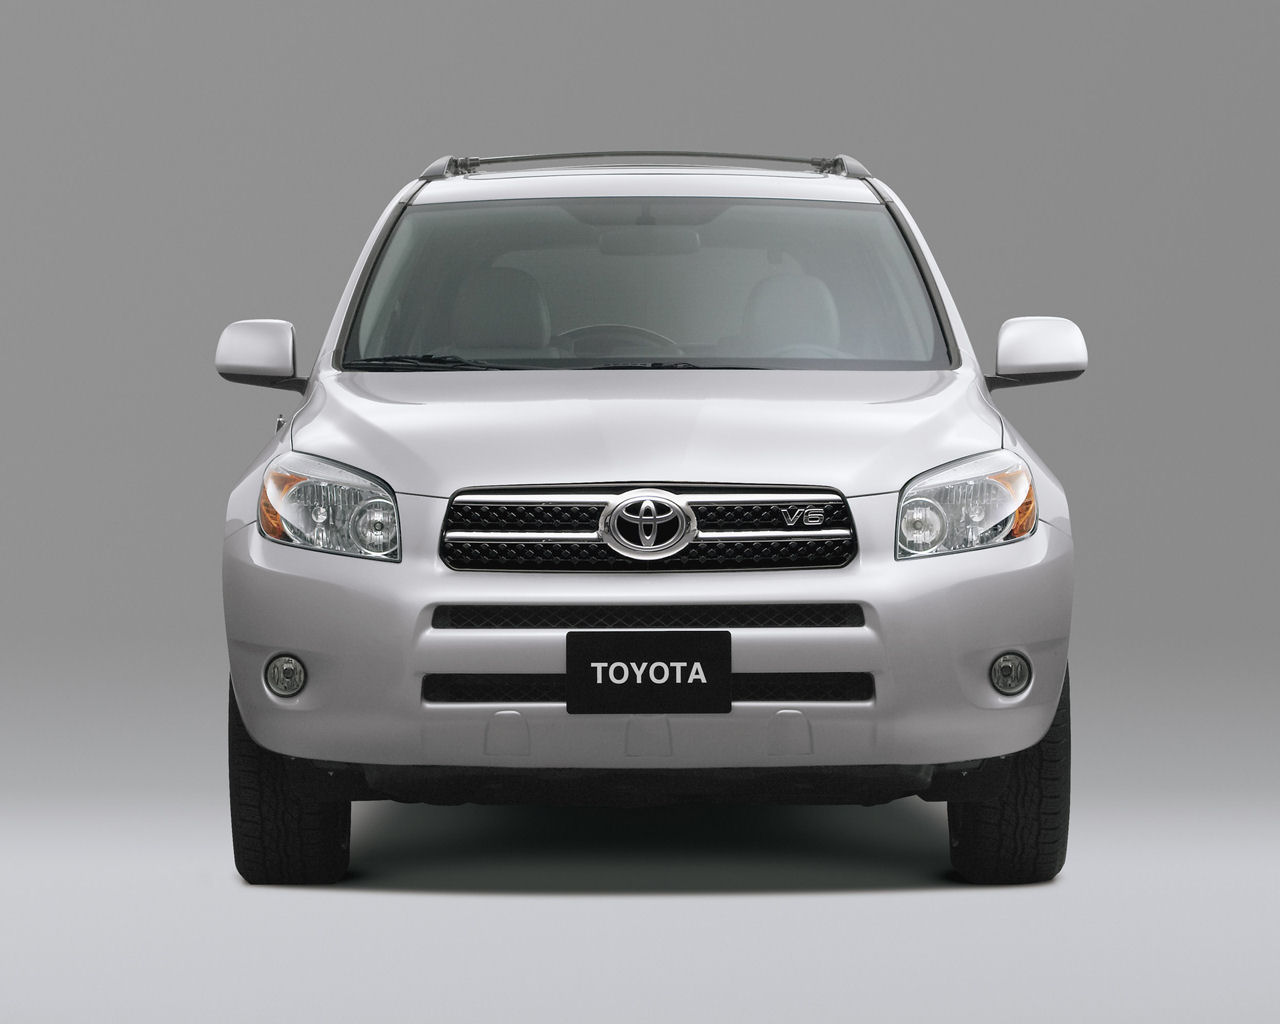 new 2014 toyota rav4 price in canada release and price on prices new car interior design. Black Bedroom Furniture Sets. Home Design Ideas